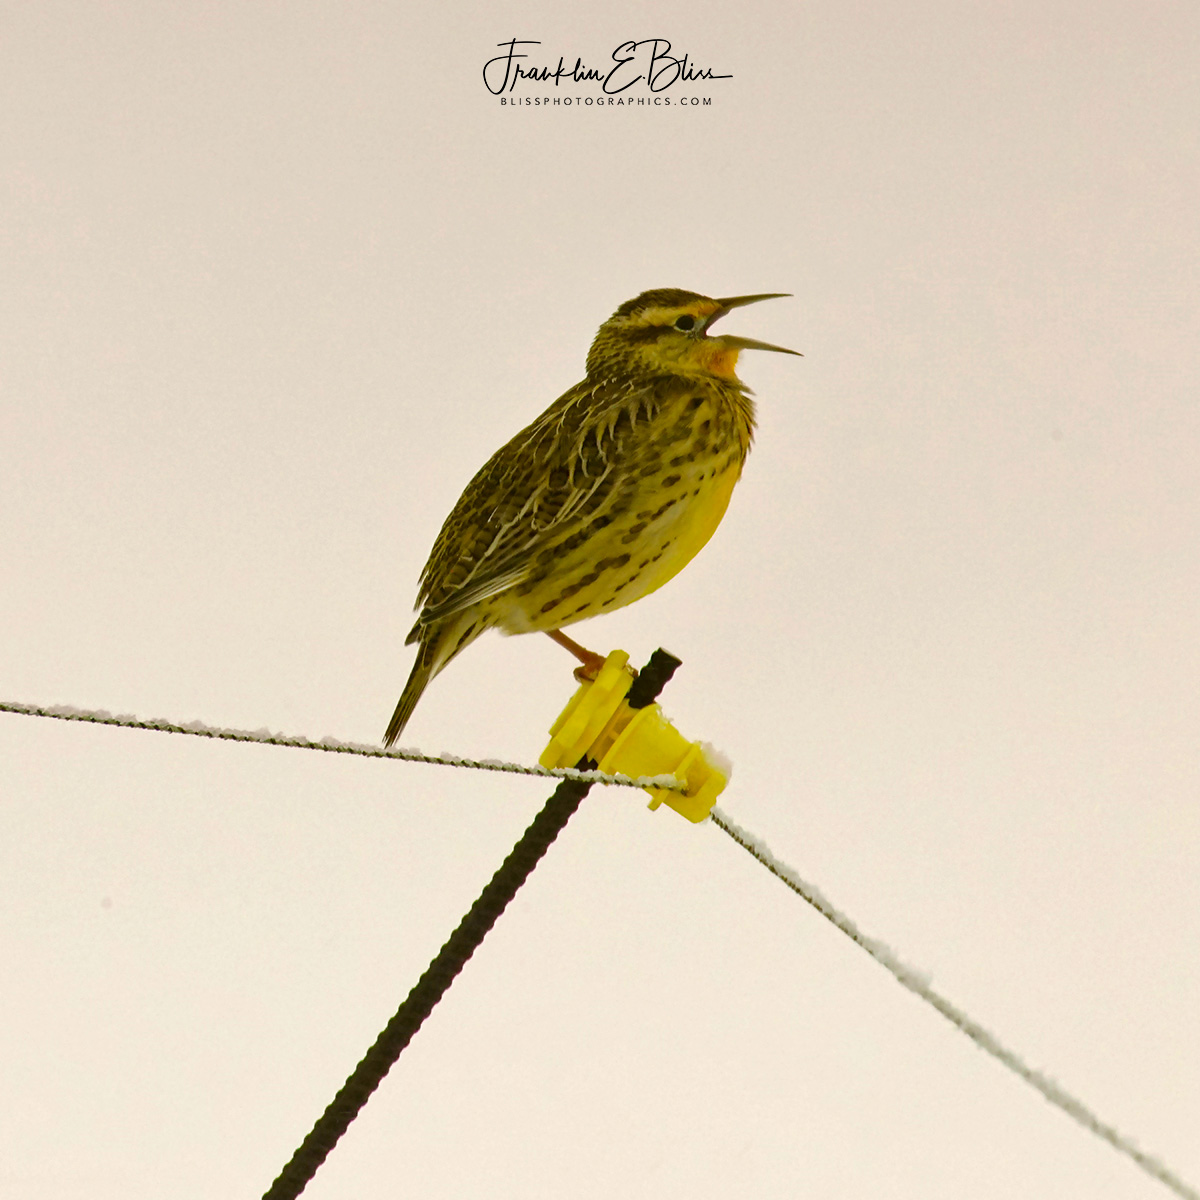 One Legged Meadowlark Singing in the Snow